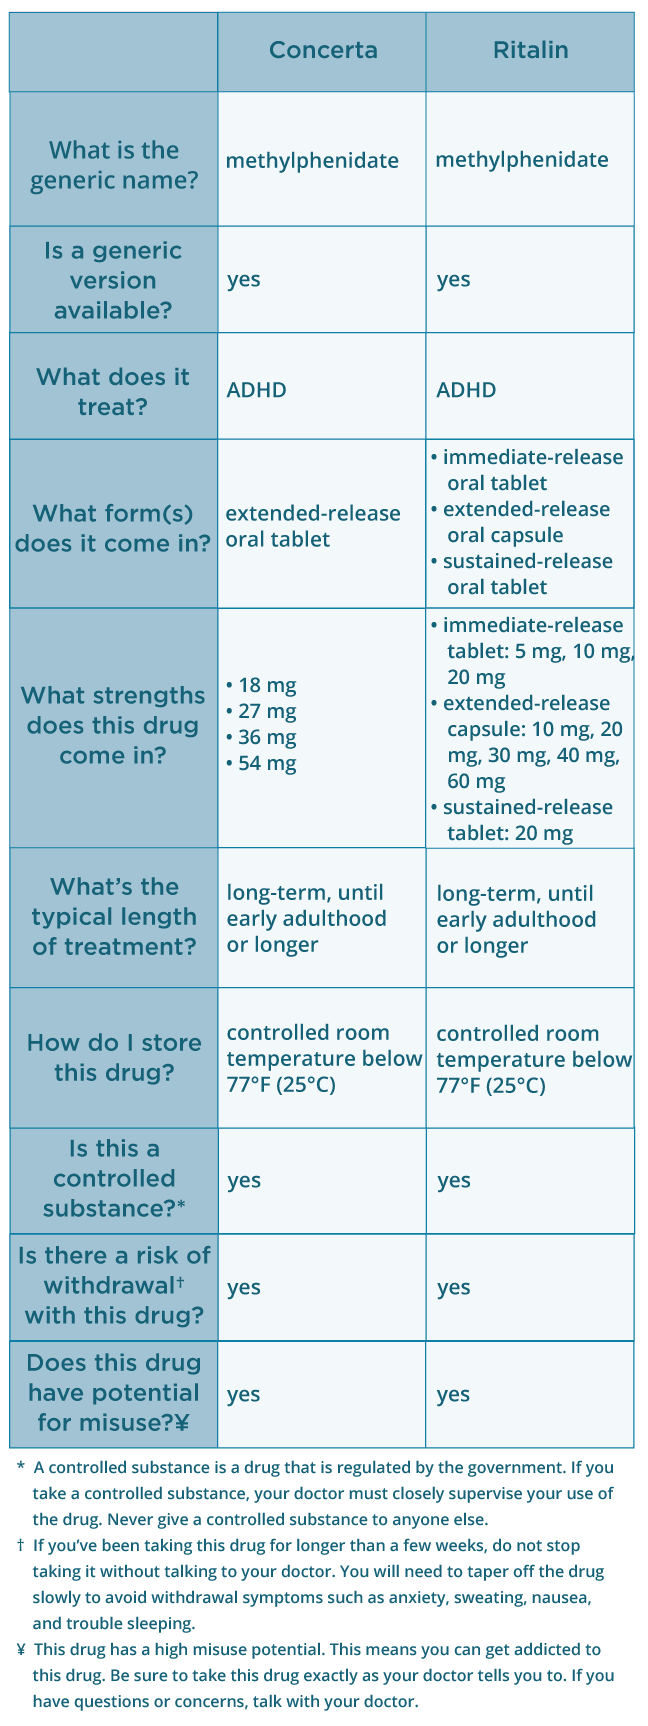 Concerta vs  Ritalin: Dosage Differences and More